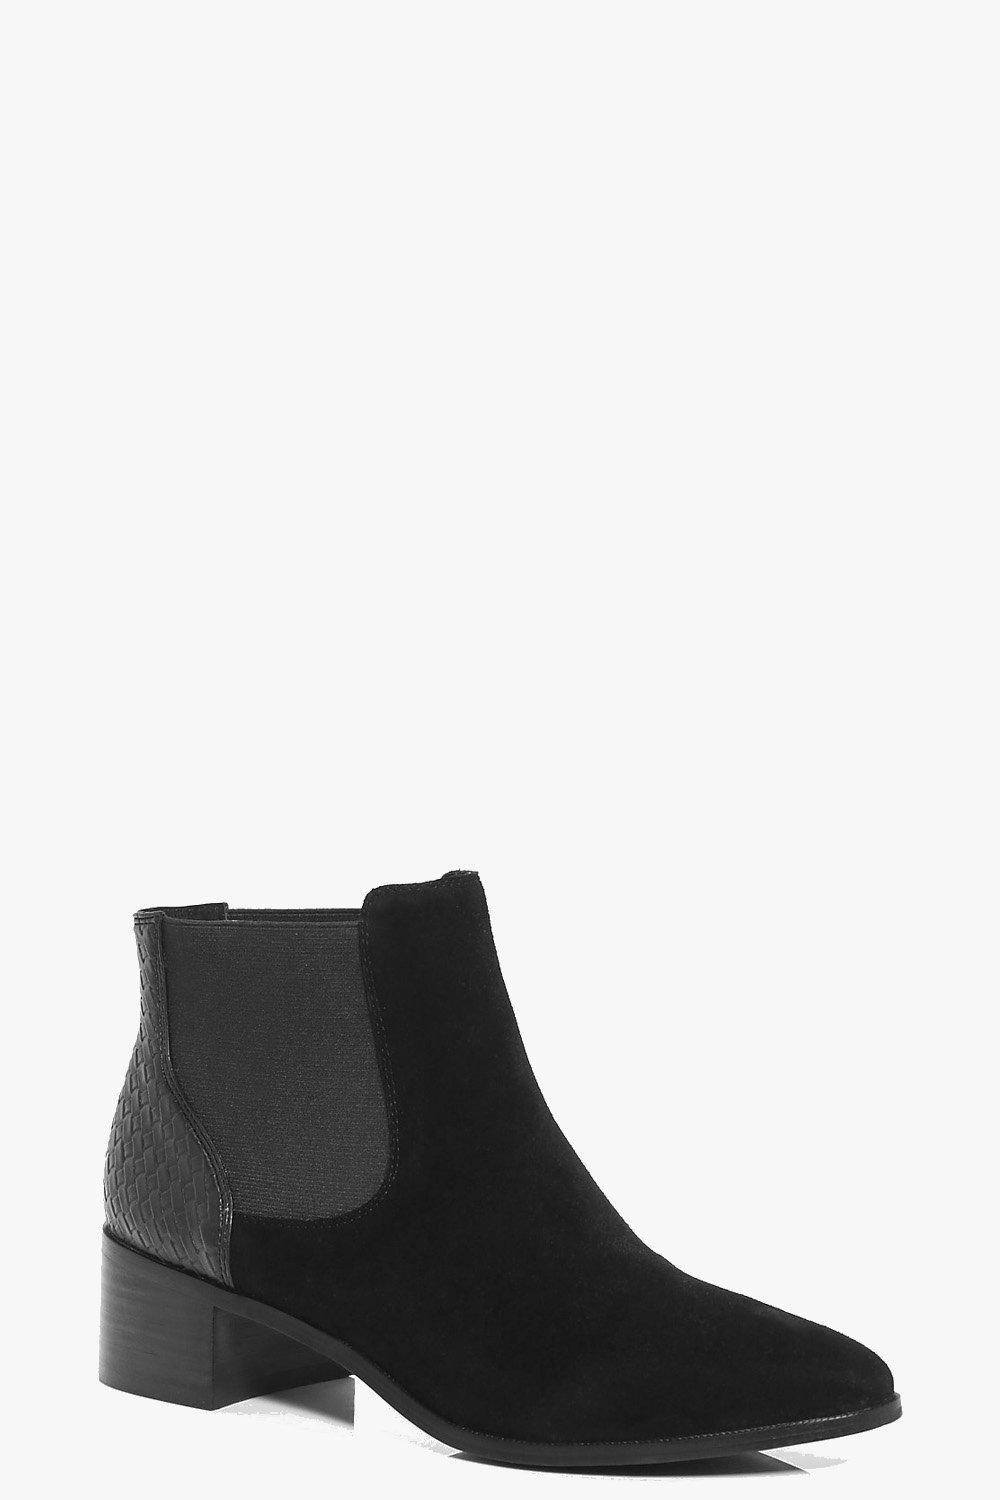 Faye Boutique Suede Chelsea Ankle Boot